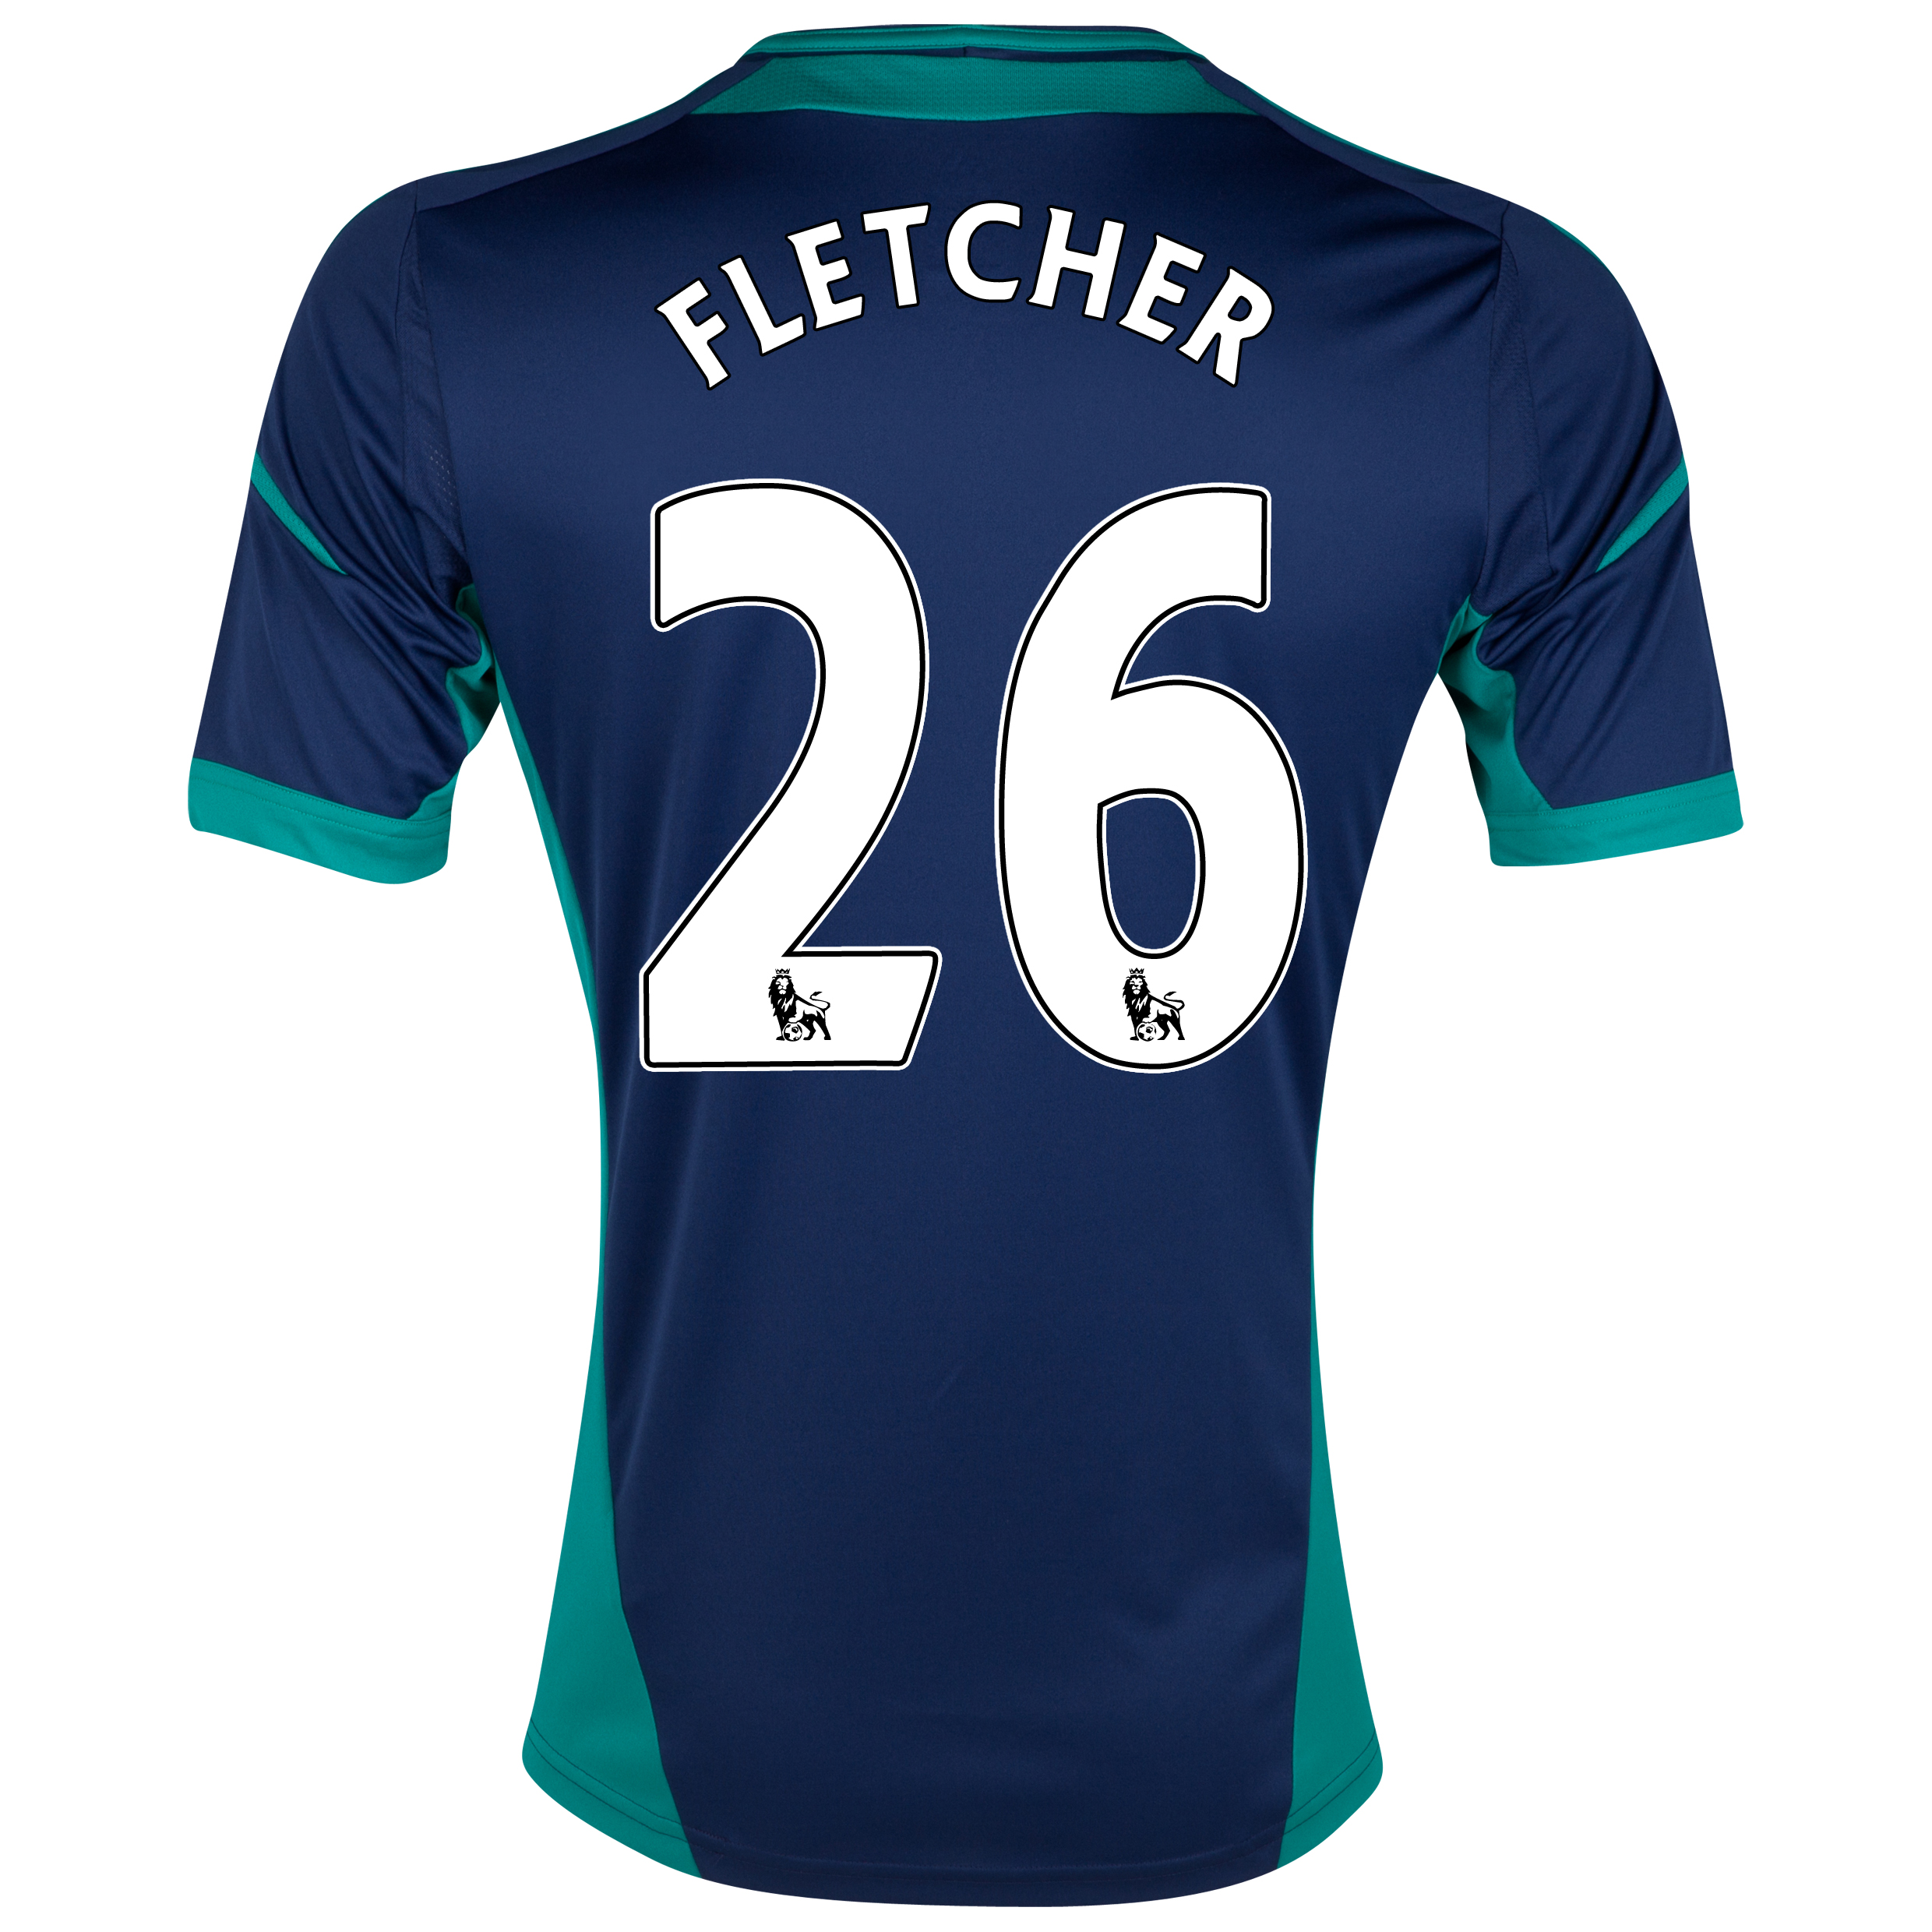 Sunderland Away Shirt 2012/13 with Fletcher 26 printing